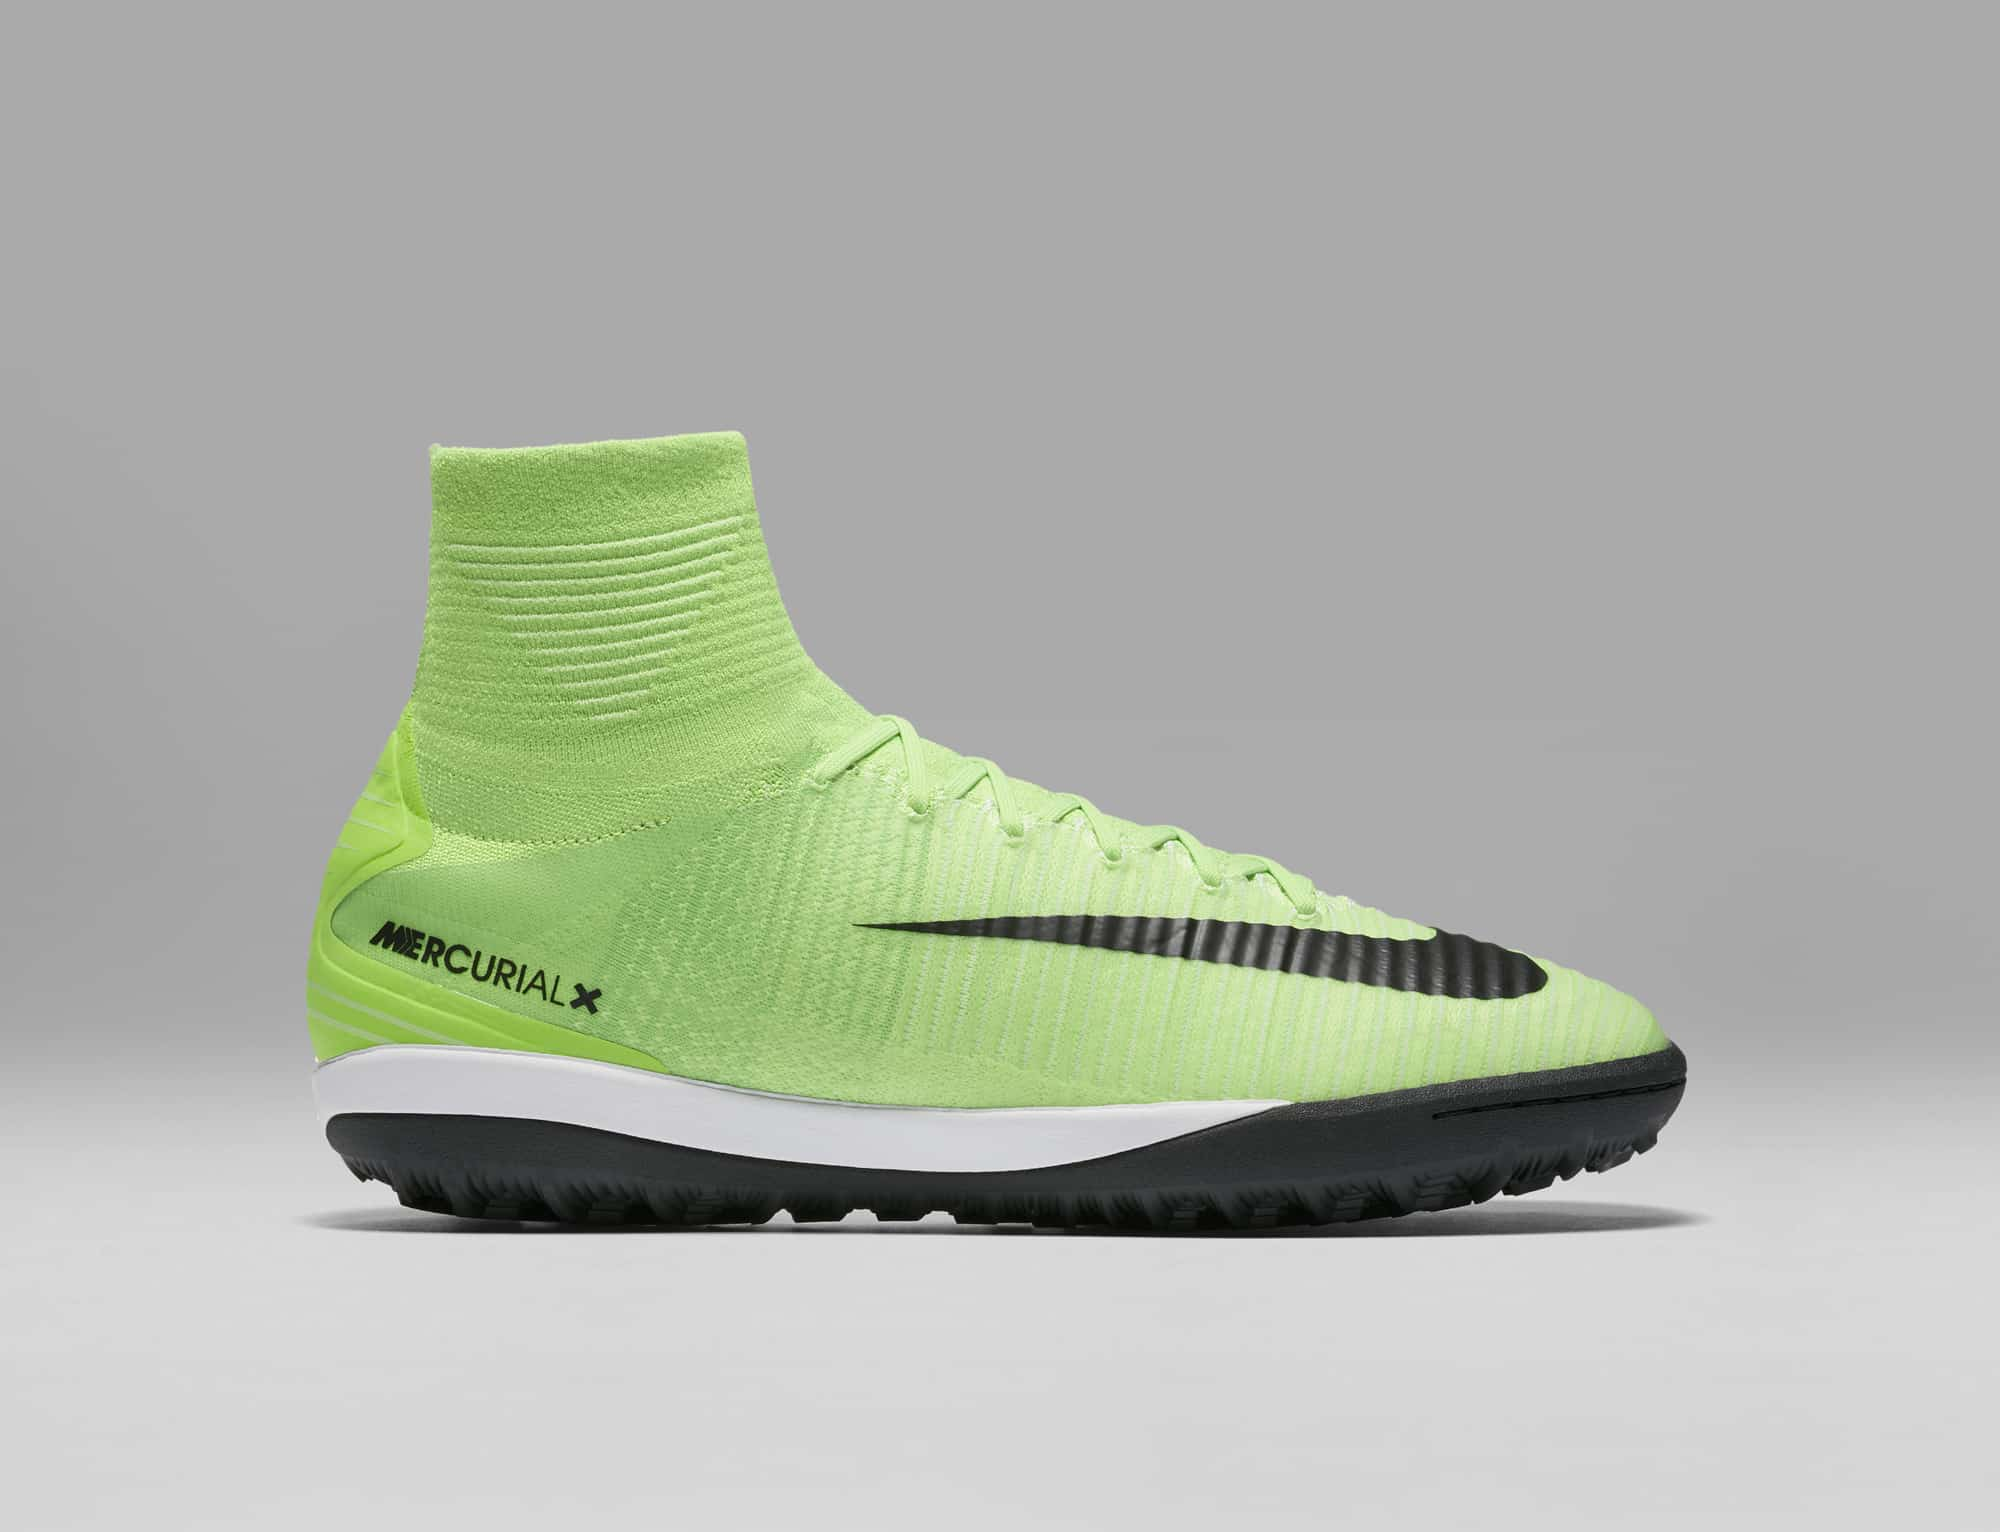 chaussures-football-Nike-MercurialX-Proximo-Men-Radiation-Flare-img1